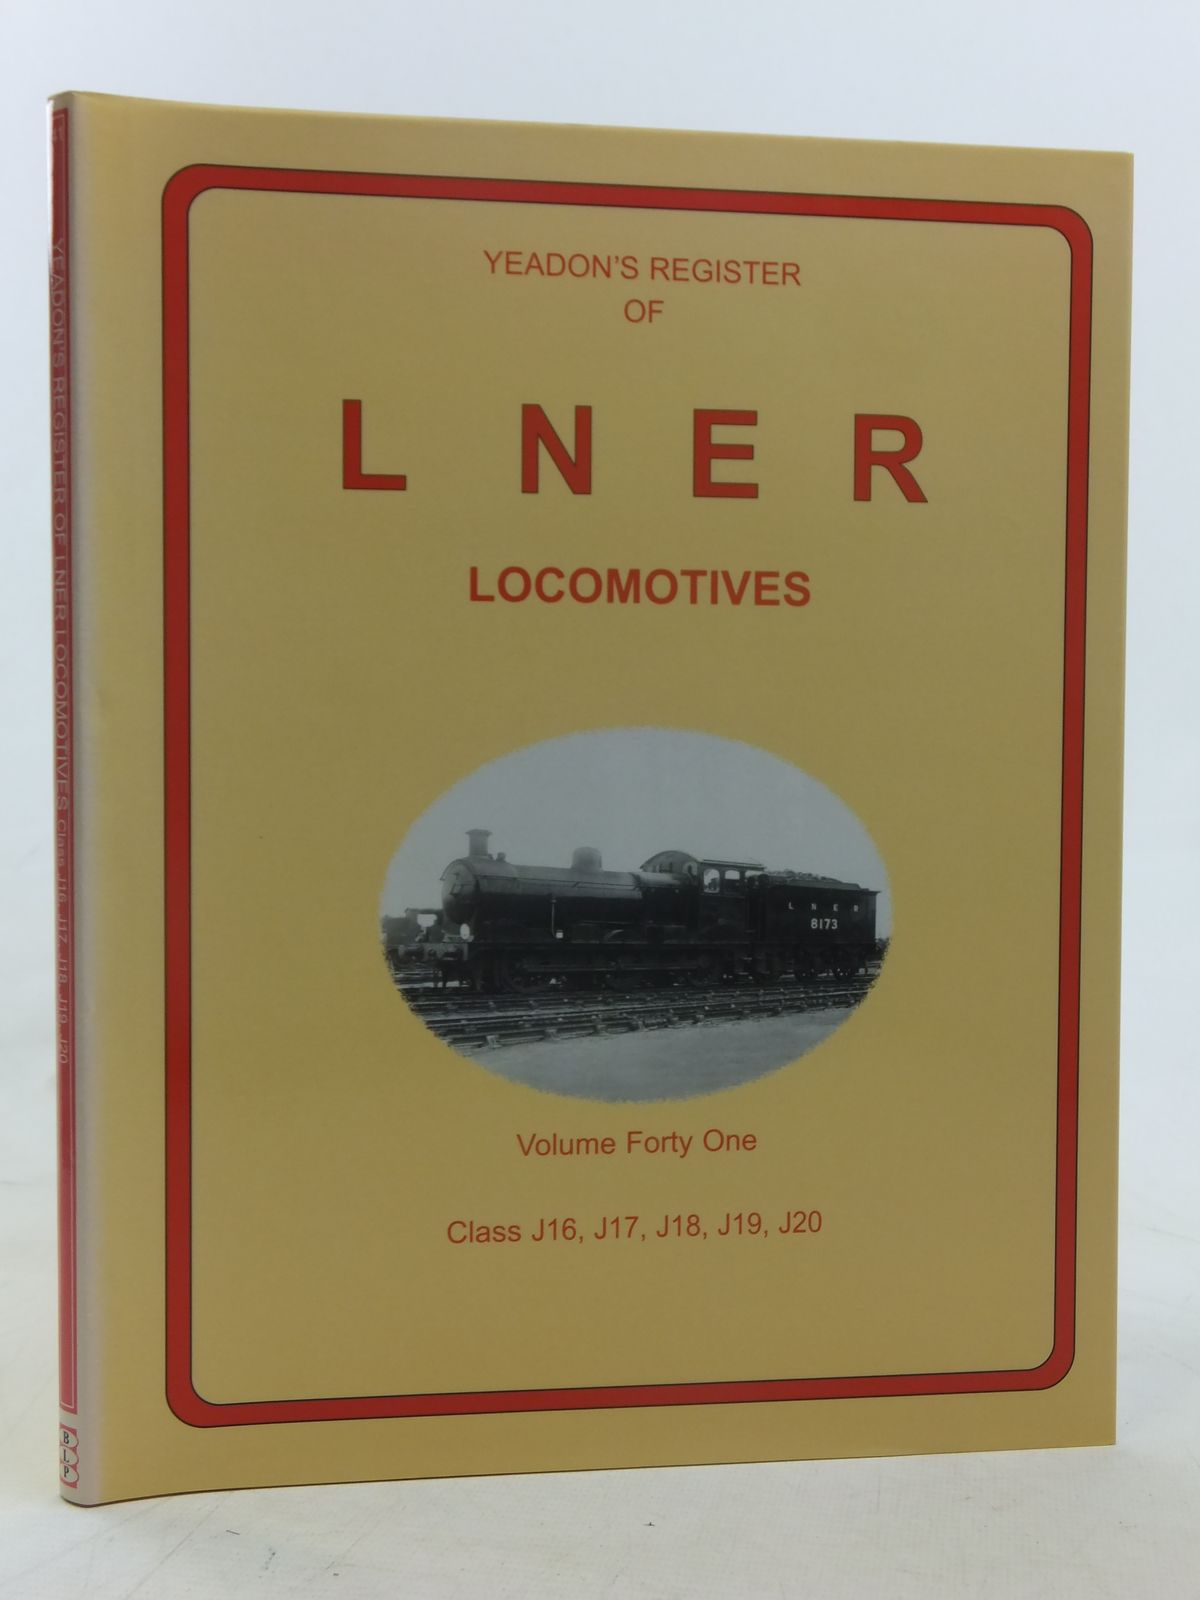 Photo of YEADON'S REGISTER OF LNER LOCOMOTIVES VOLUME FORTY ONE published by Challenger Publications, Book Law Publications (STOCK CODE: 1606923)  for sale by Stella & Rose's Books